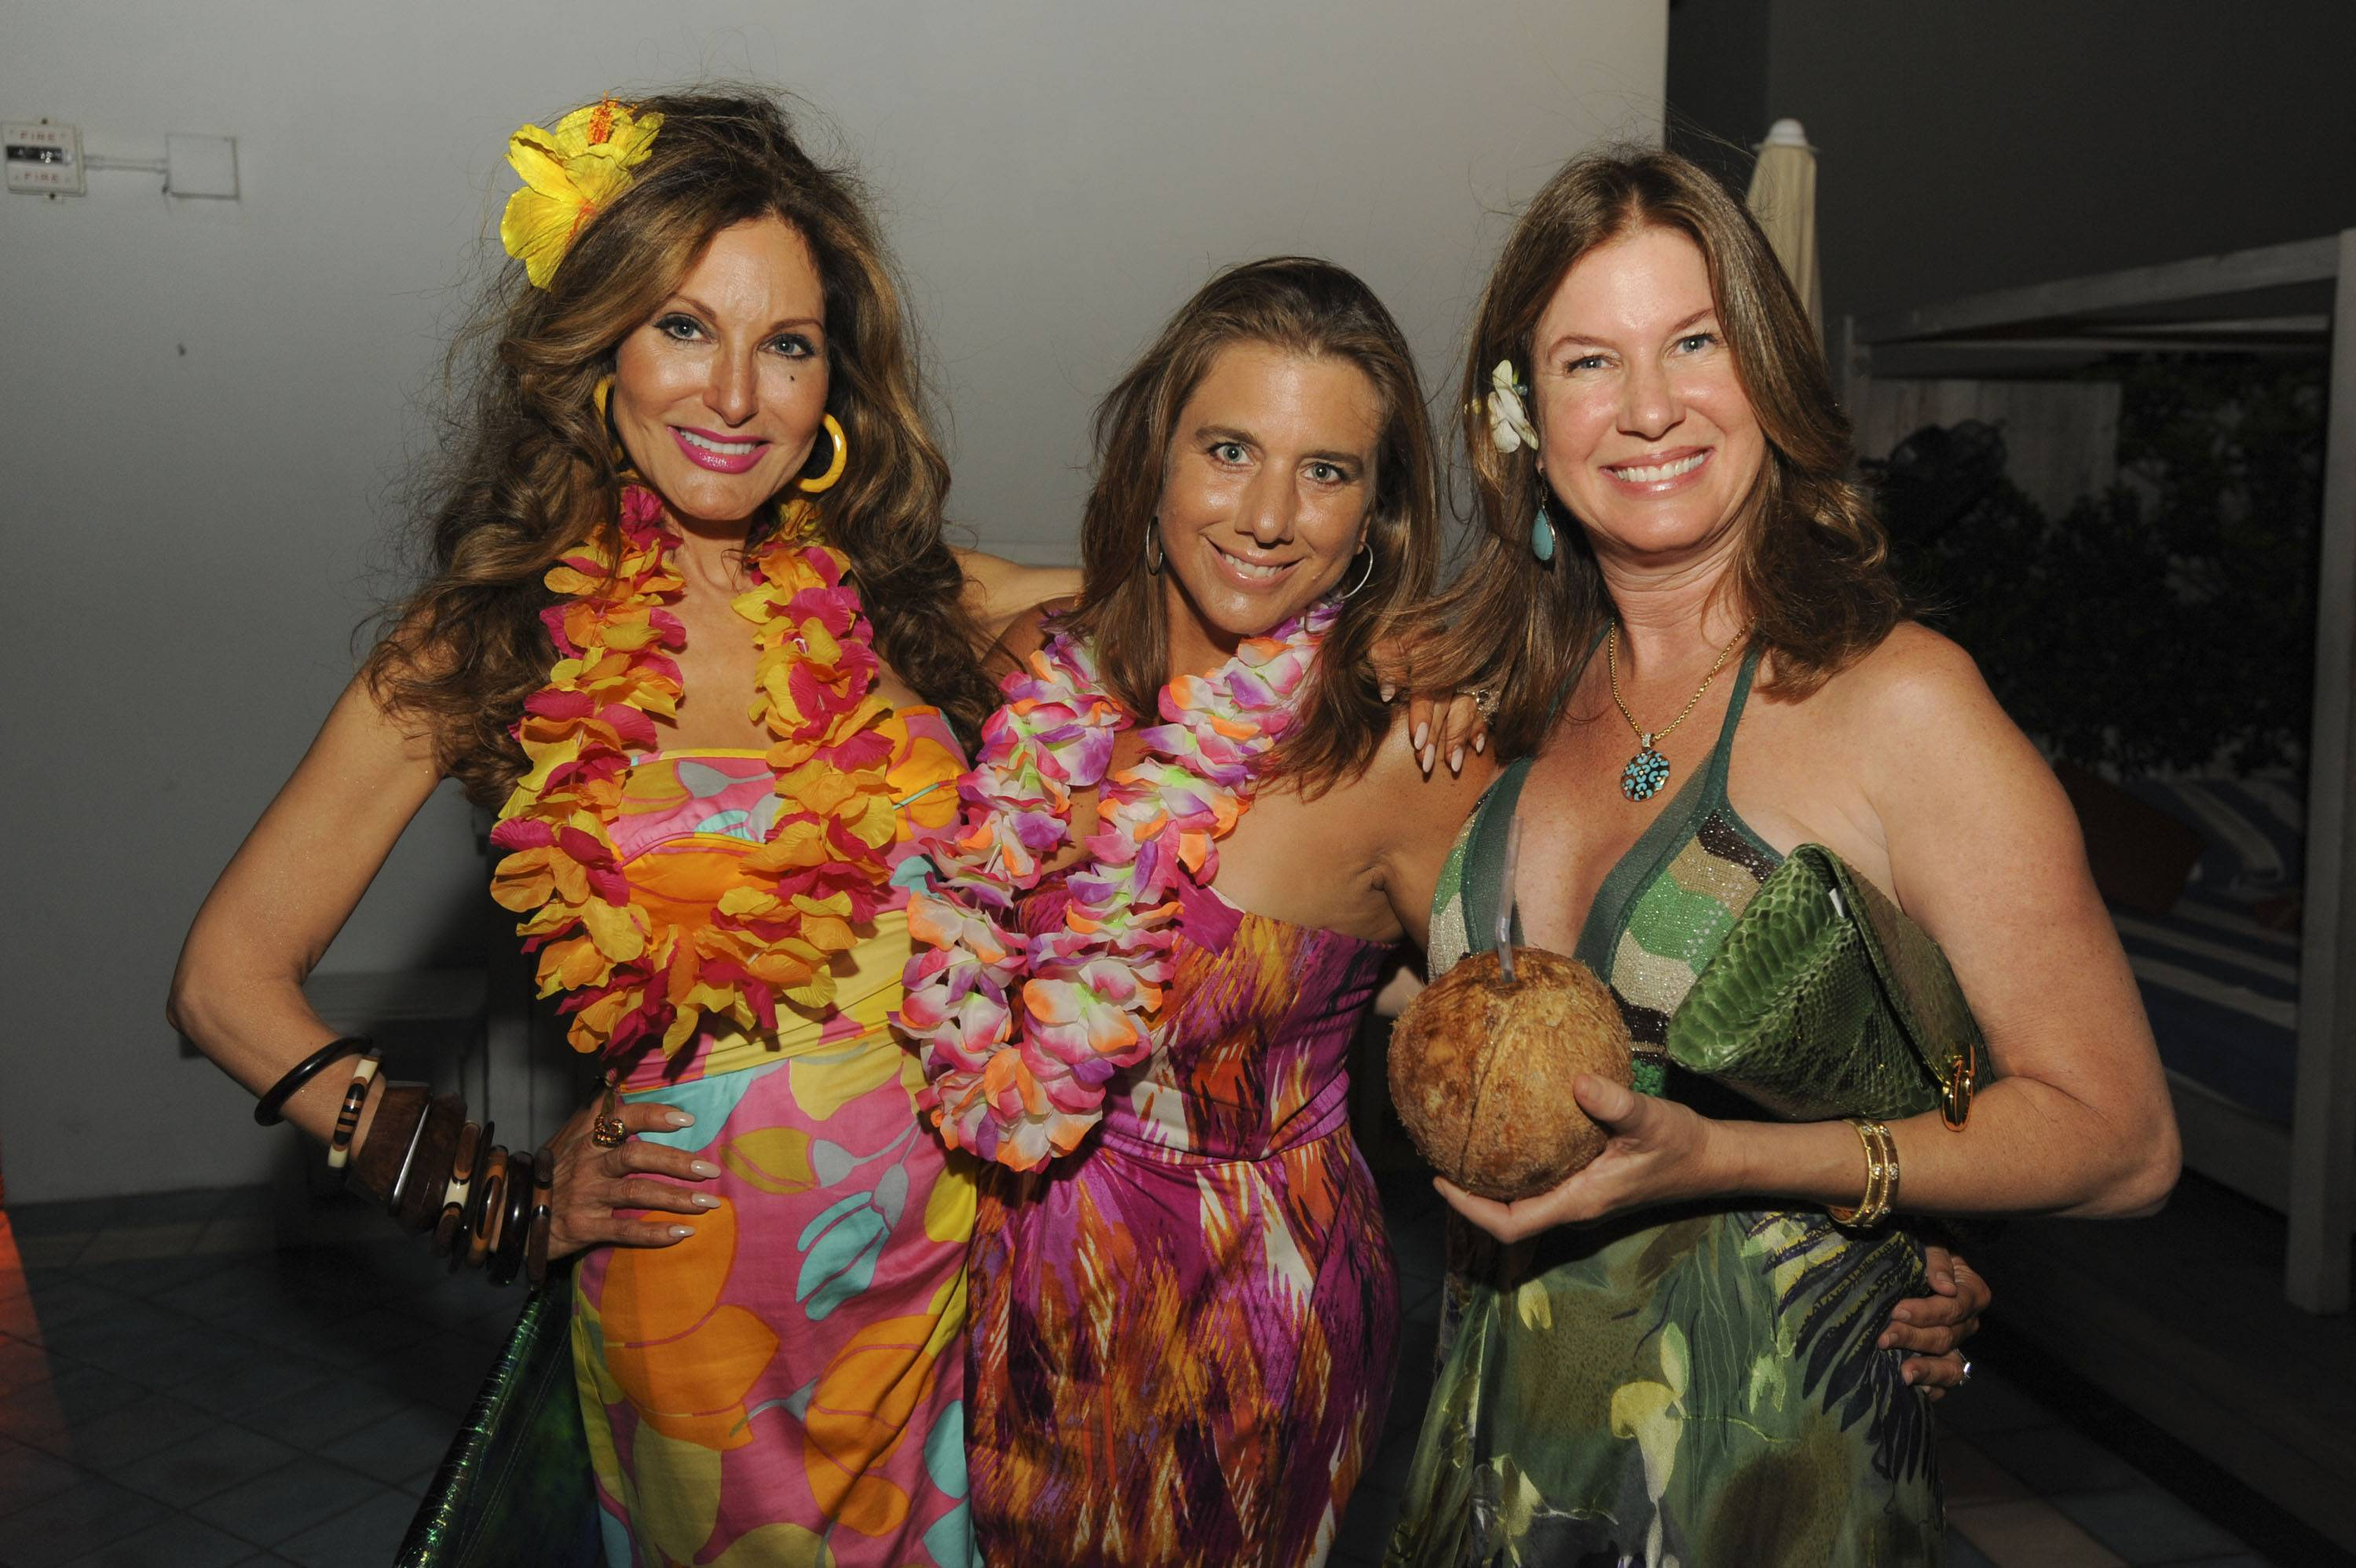 Tara Solomon, Mary Jo Shore & Dana Shear05